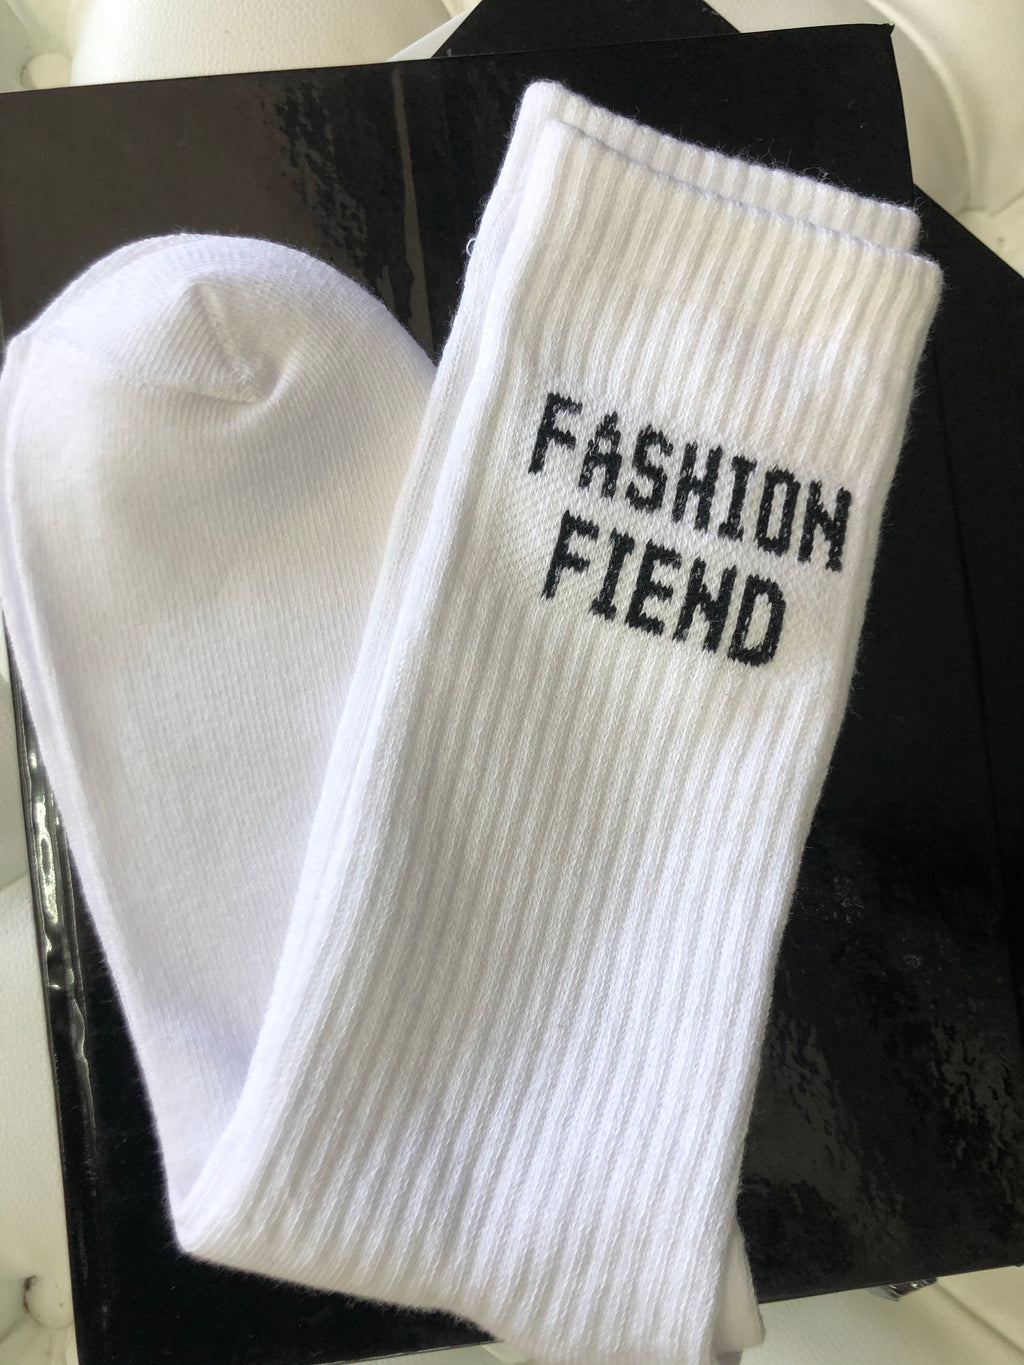 Fashion Fiend Logo Socks